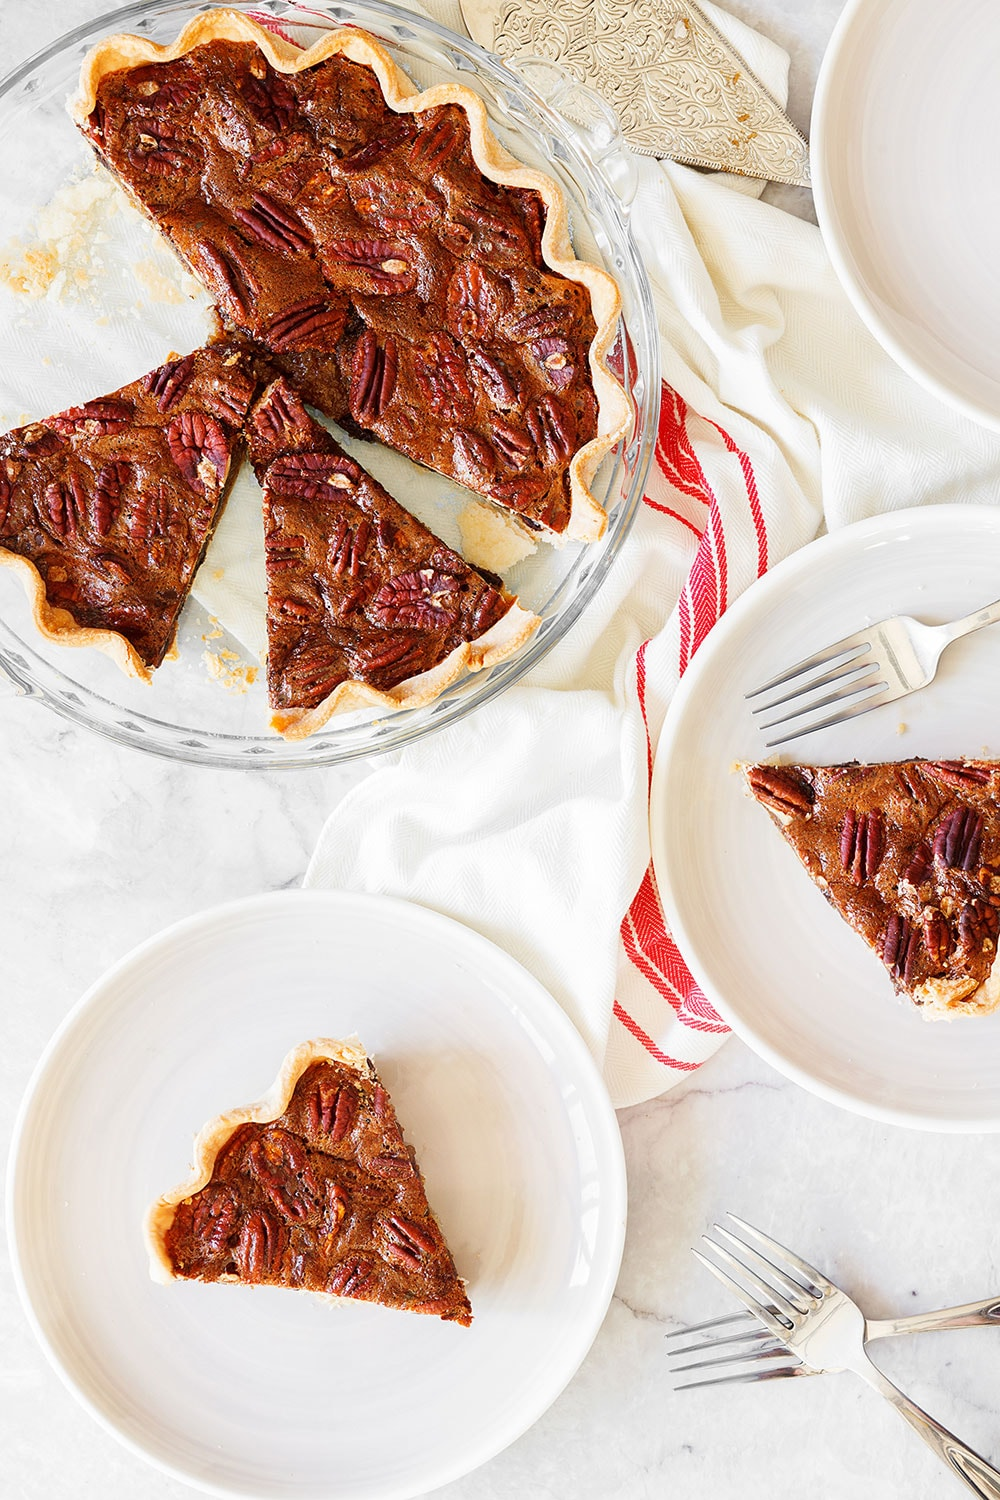 Slices of homemade Chocolate Pecan Pie for Thanksgiving